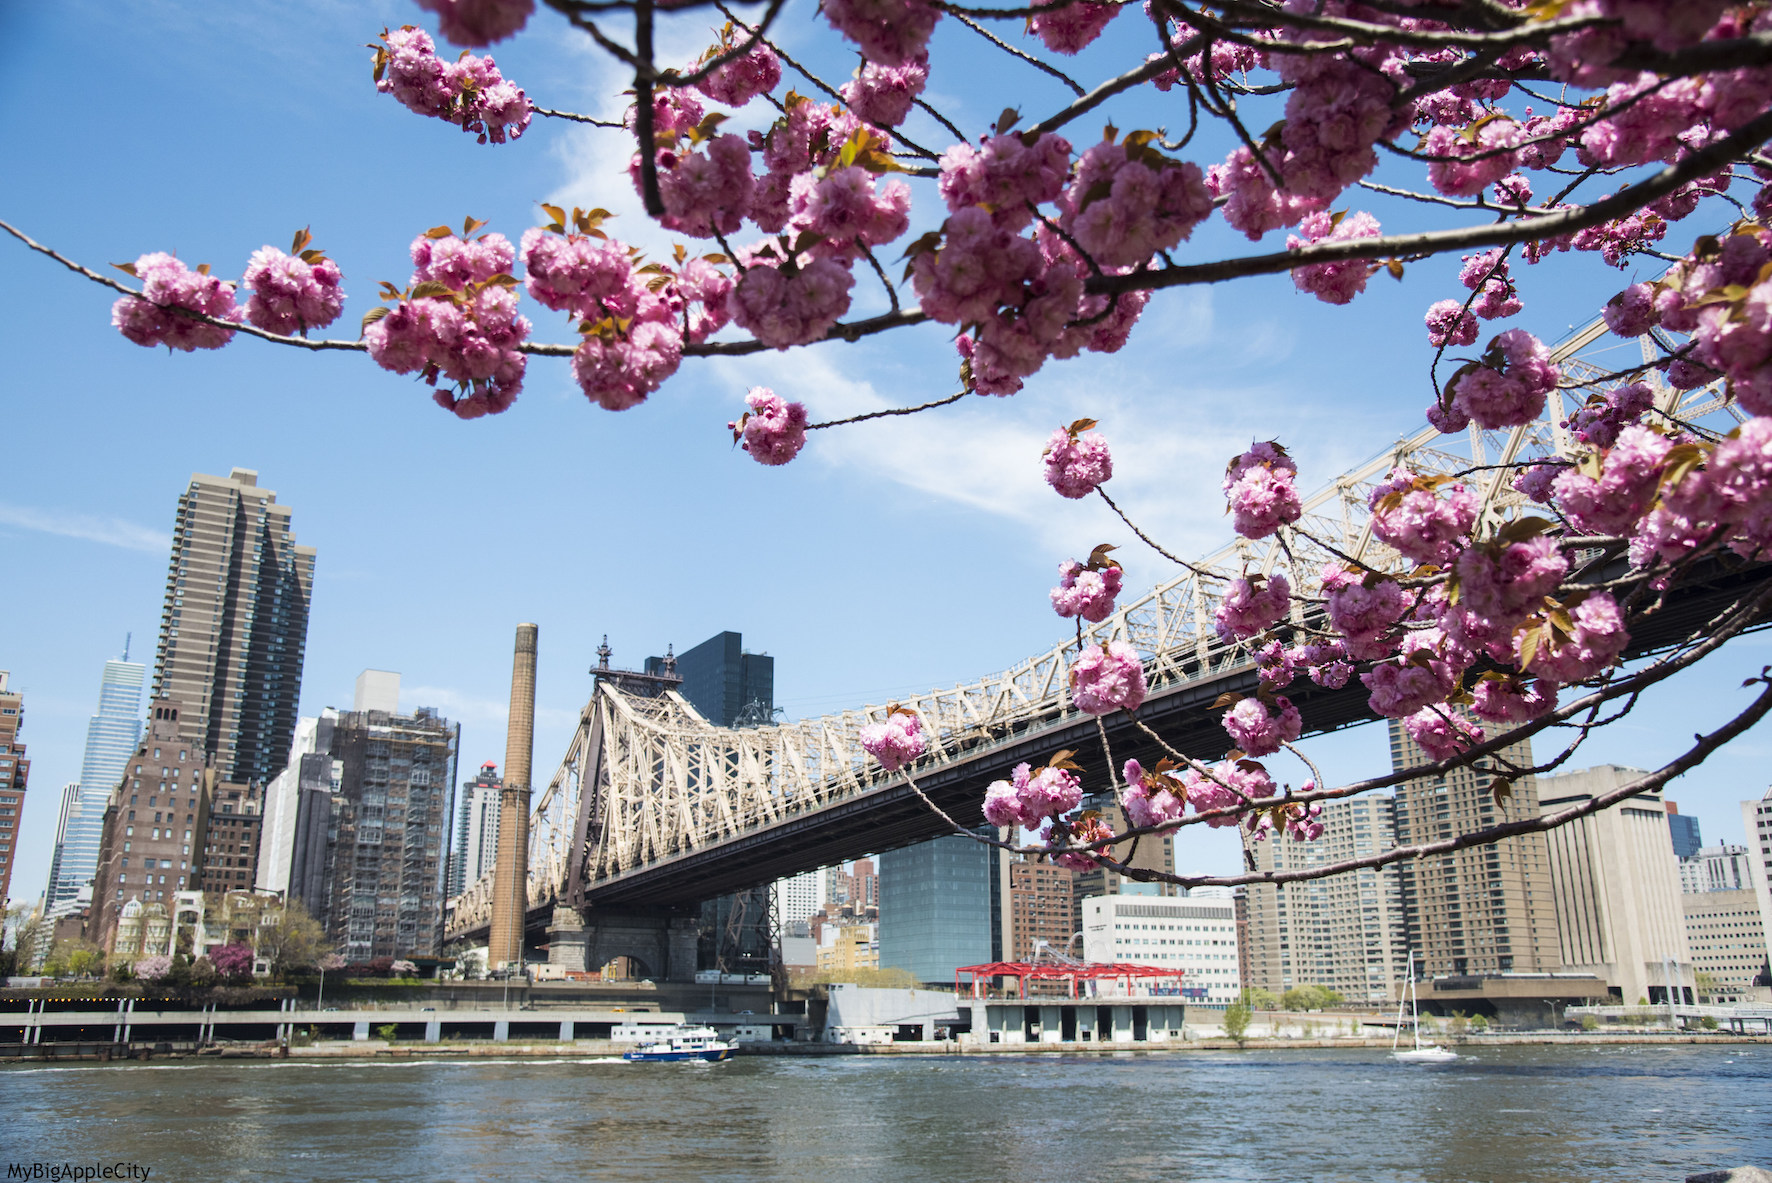 https://secureservercdn.net/166.62.109.86/e50.ce4.myftpupload.com/wp-content/uploads/2015/05/Spring-Cherry-blossom-tree-pink-New-York-Travel.jpg